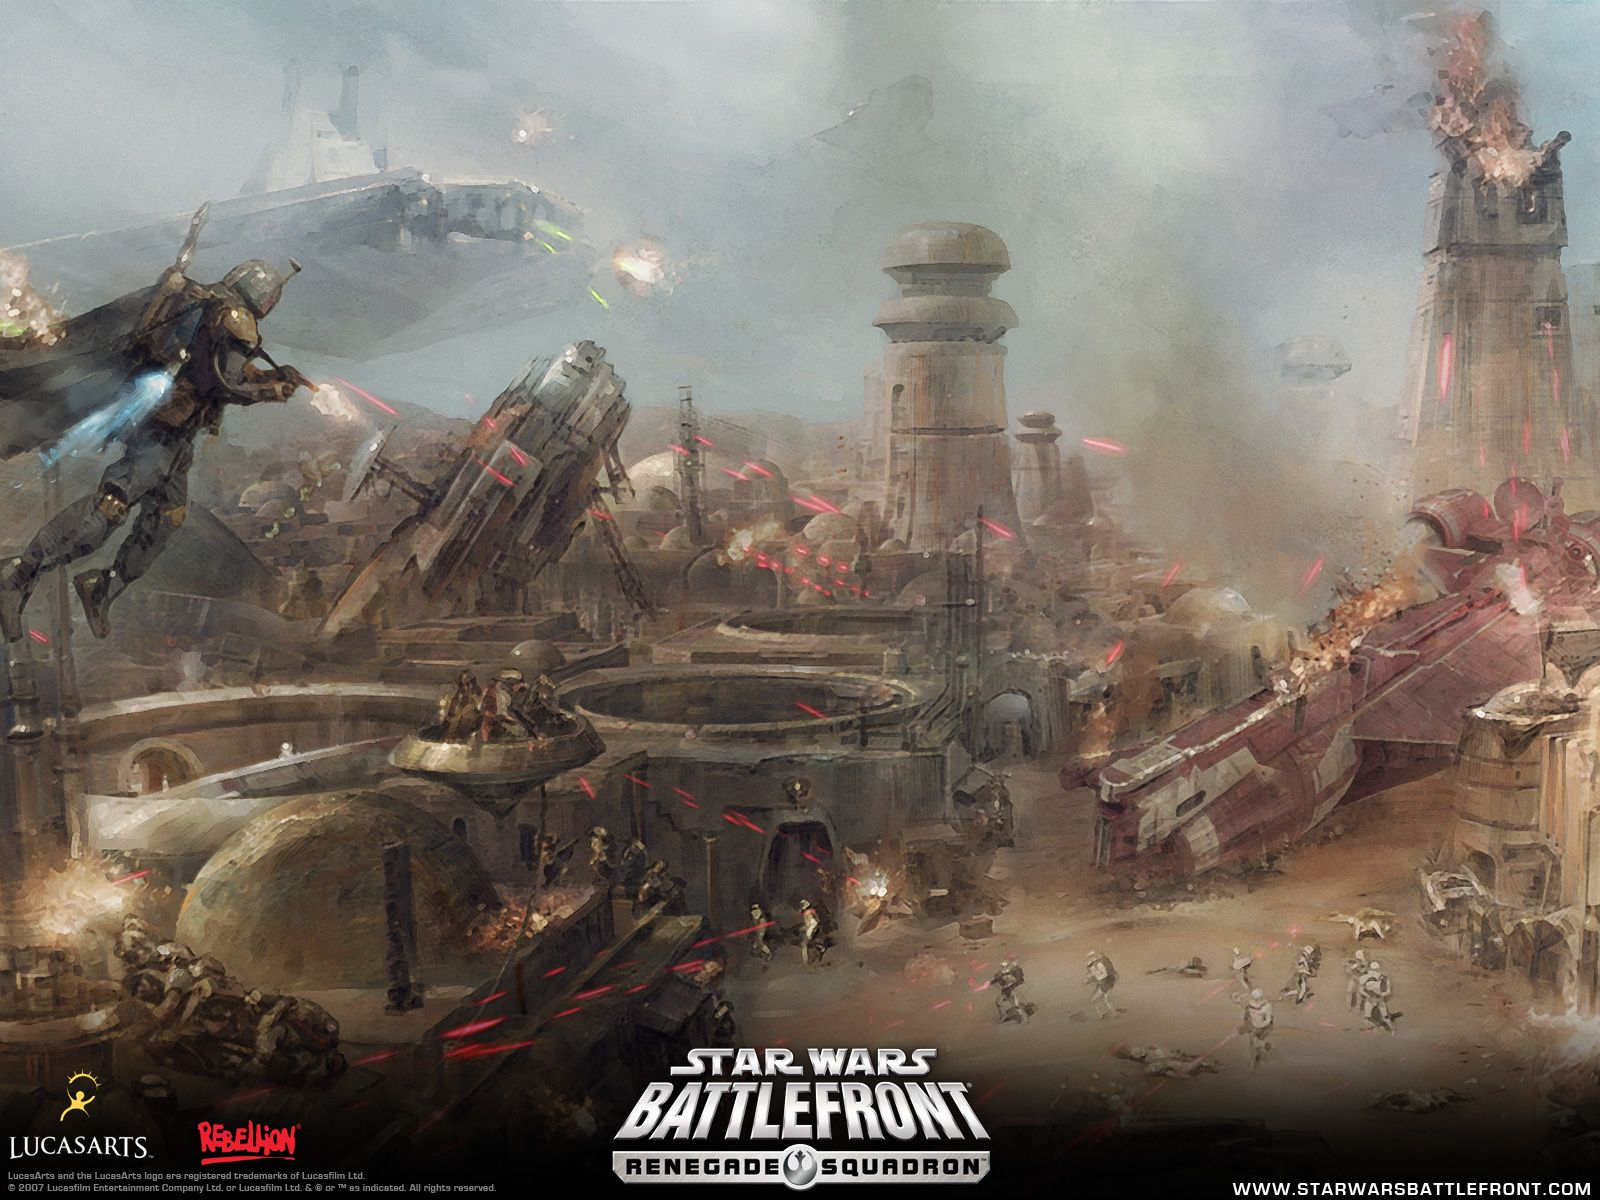 Star Wars Battlefront Renegade Squadron 7 3loagshpu3 1600 1200 Awesome Wallpapers